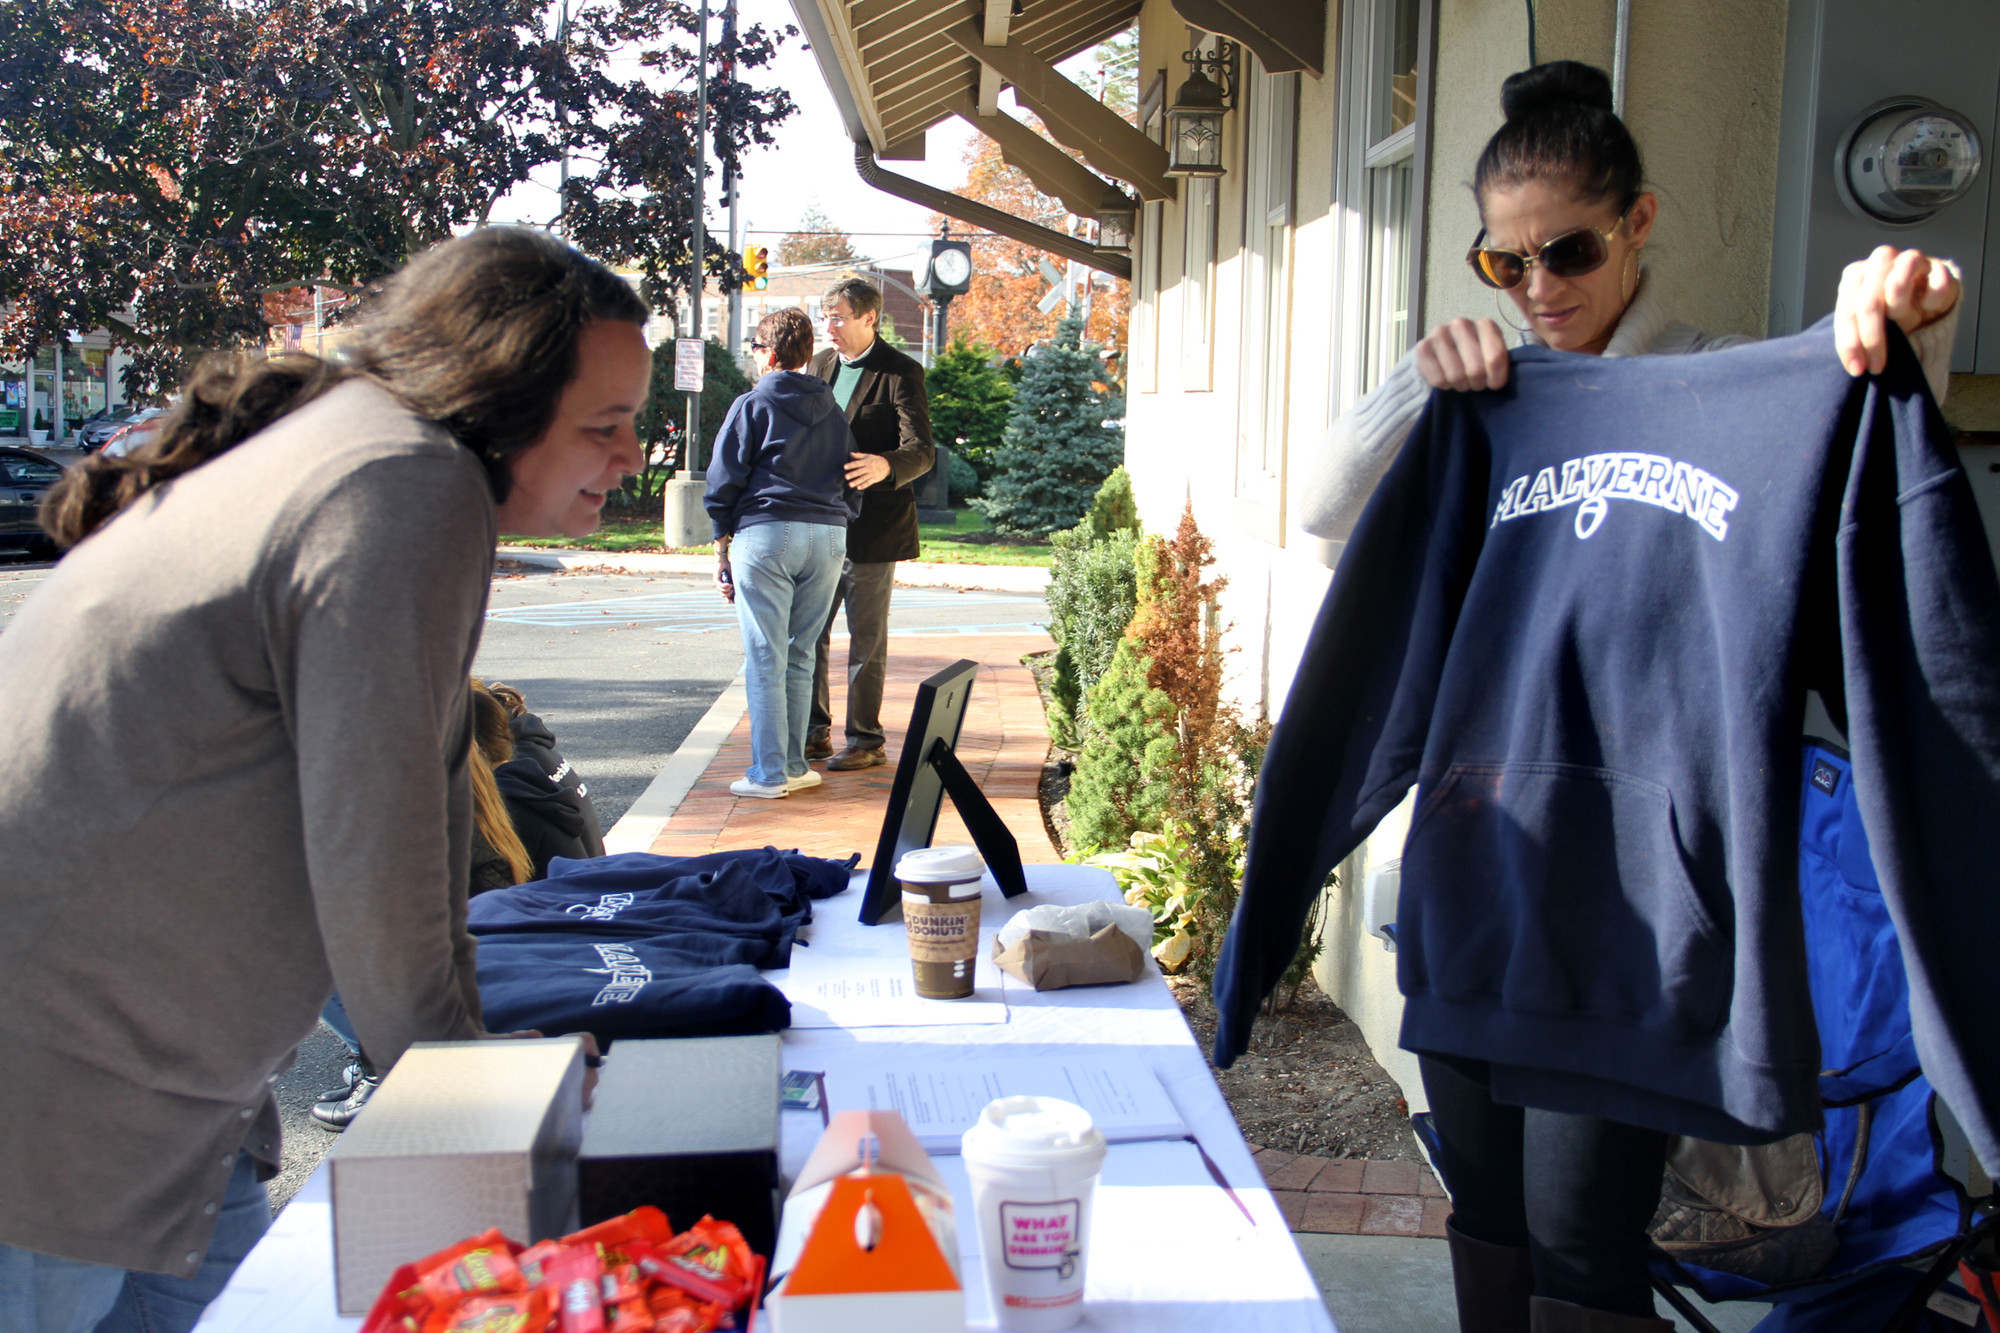 Malverne Civic President Suzanne Parra showed Laura Fiorino some of the Malverne merchandise on sale at the E-Cycle event on Nov. 2.